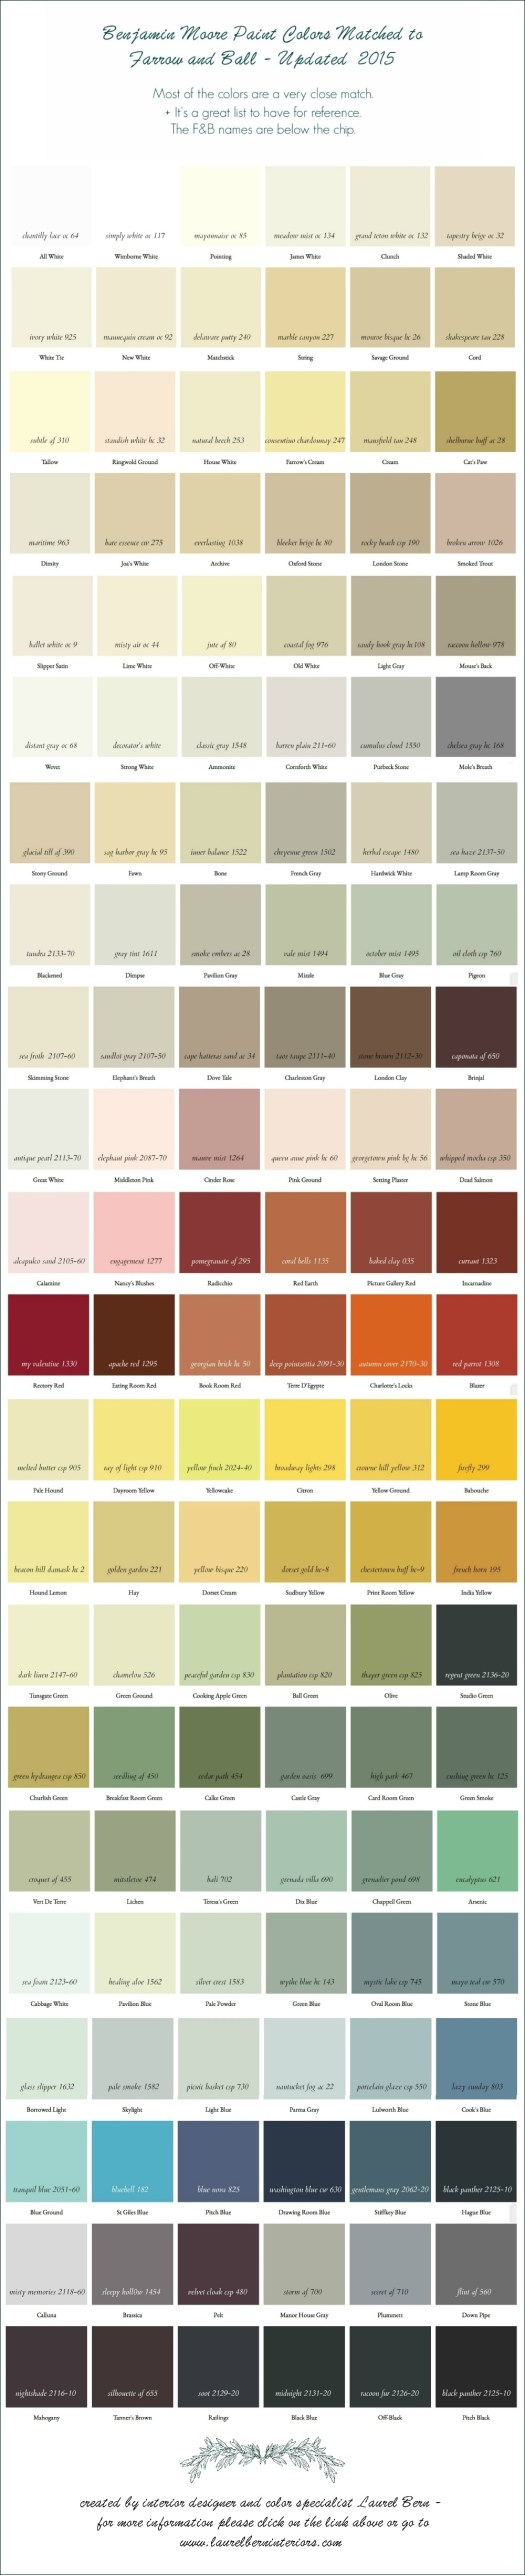 Benjamin Moore Paint Colors Matched To Farrow And Ball With The Exception Of Only A